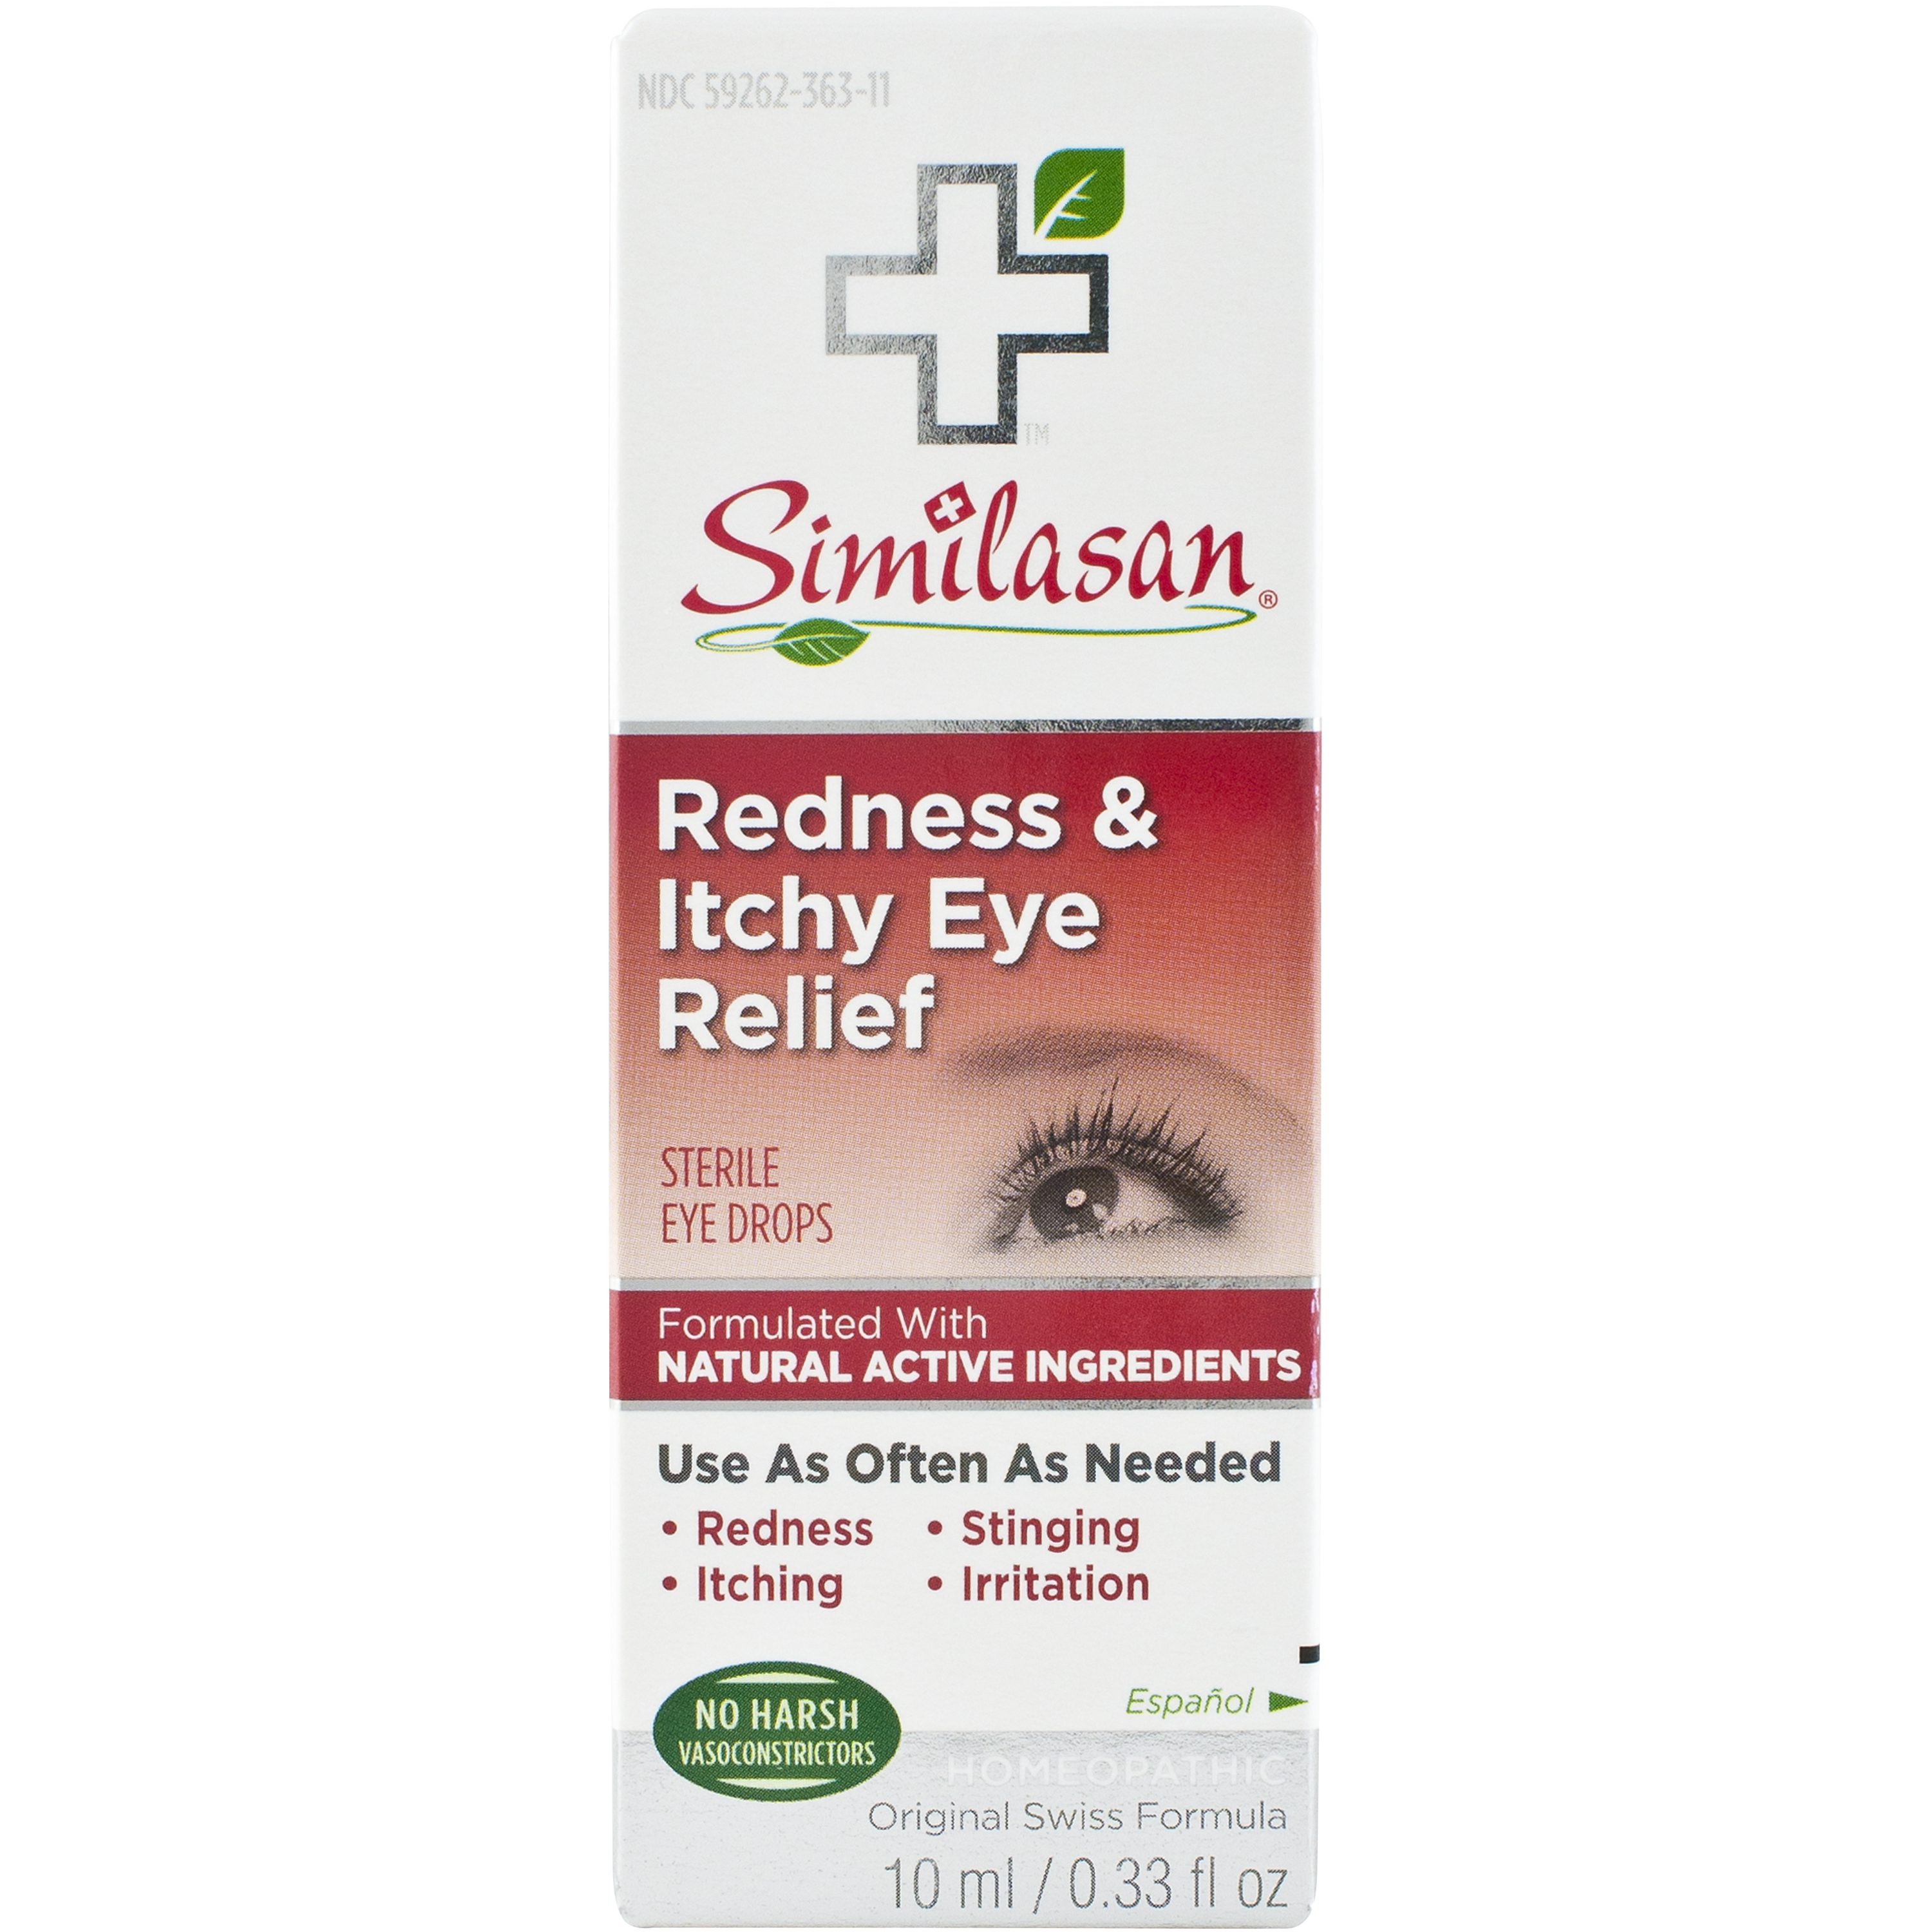 Similasan Redness & Itchy Eye Relief .33 fl oz